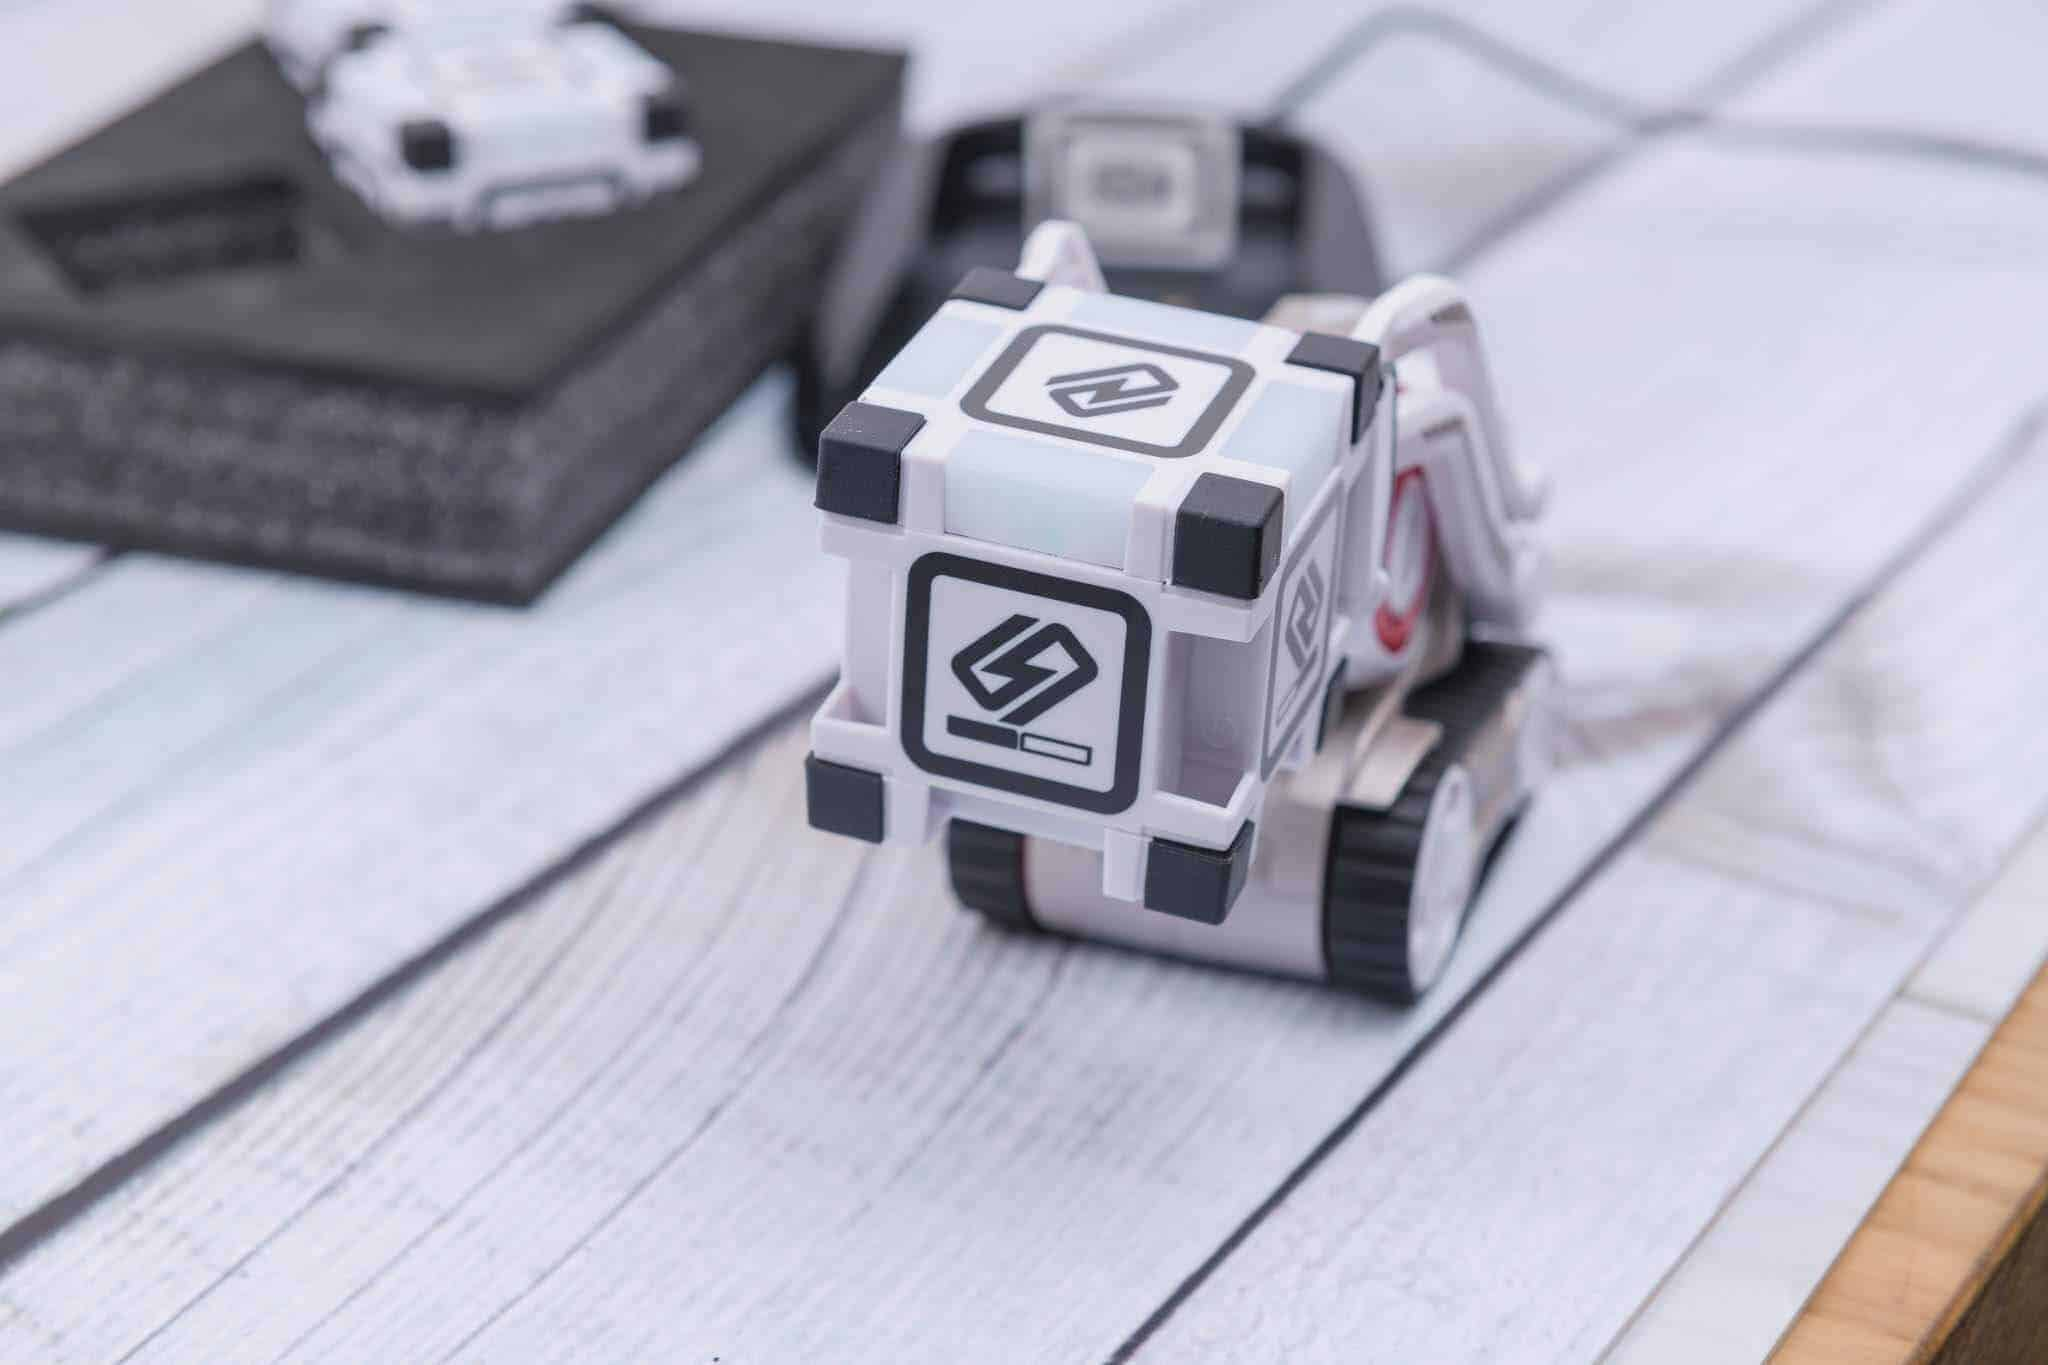 Anki Cozmo Robot Review - Calibration Test